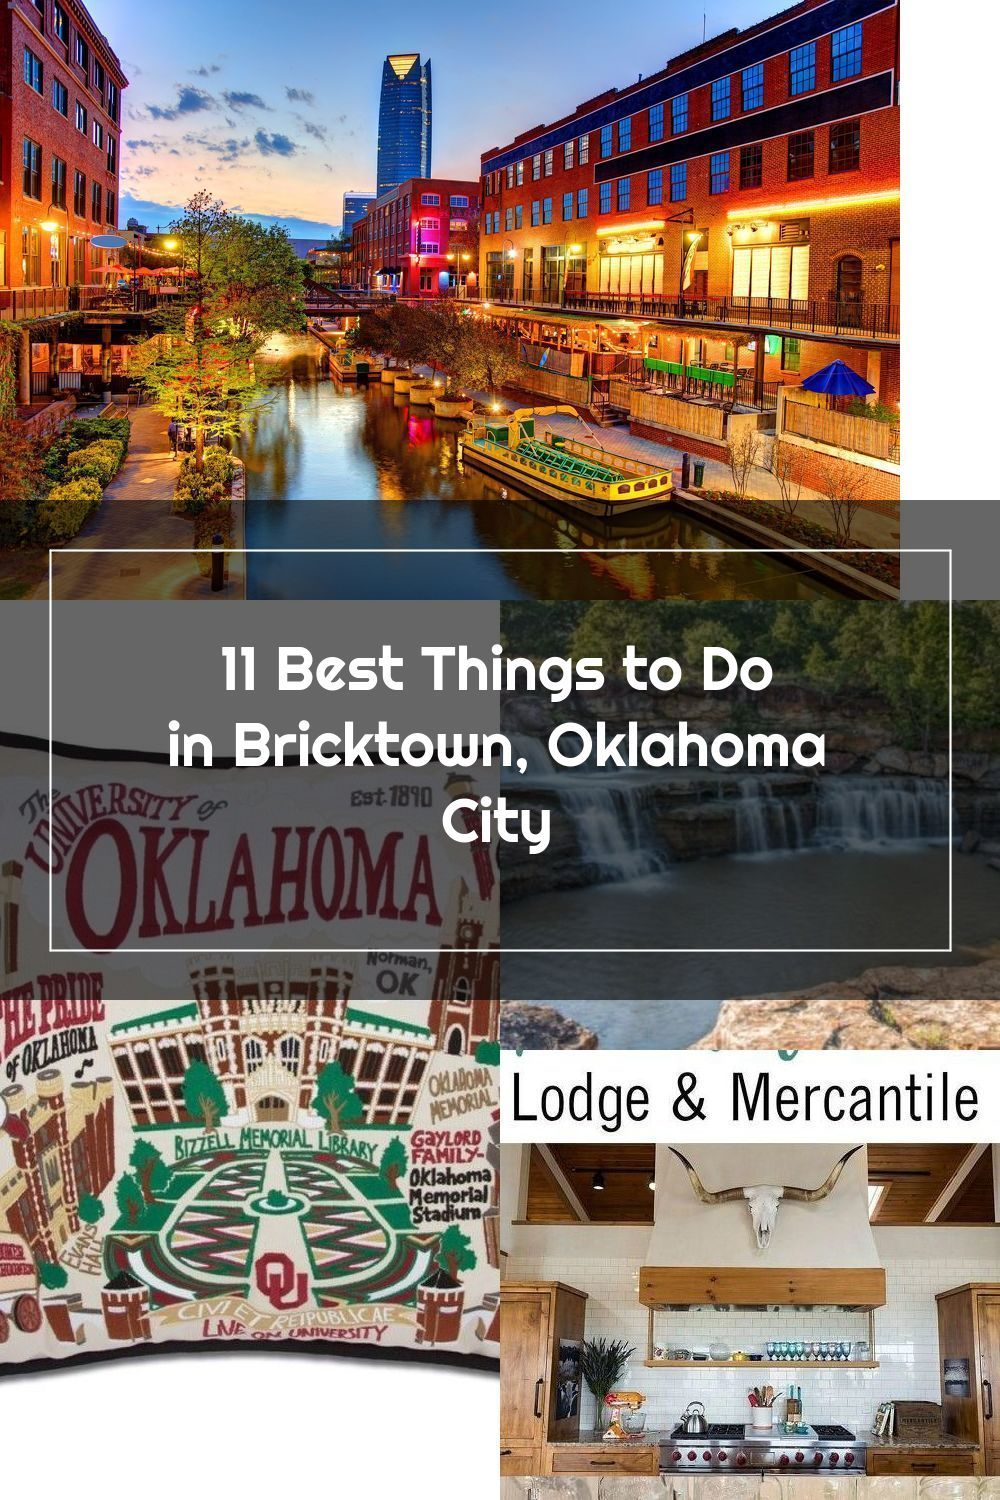 Best Things To Do In Bricktown Oklahoma City In 2020 Things To Do Bricktown Oklahoma City Oklahoma